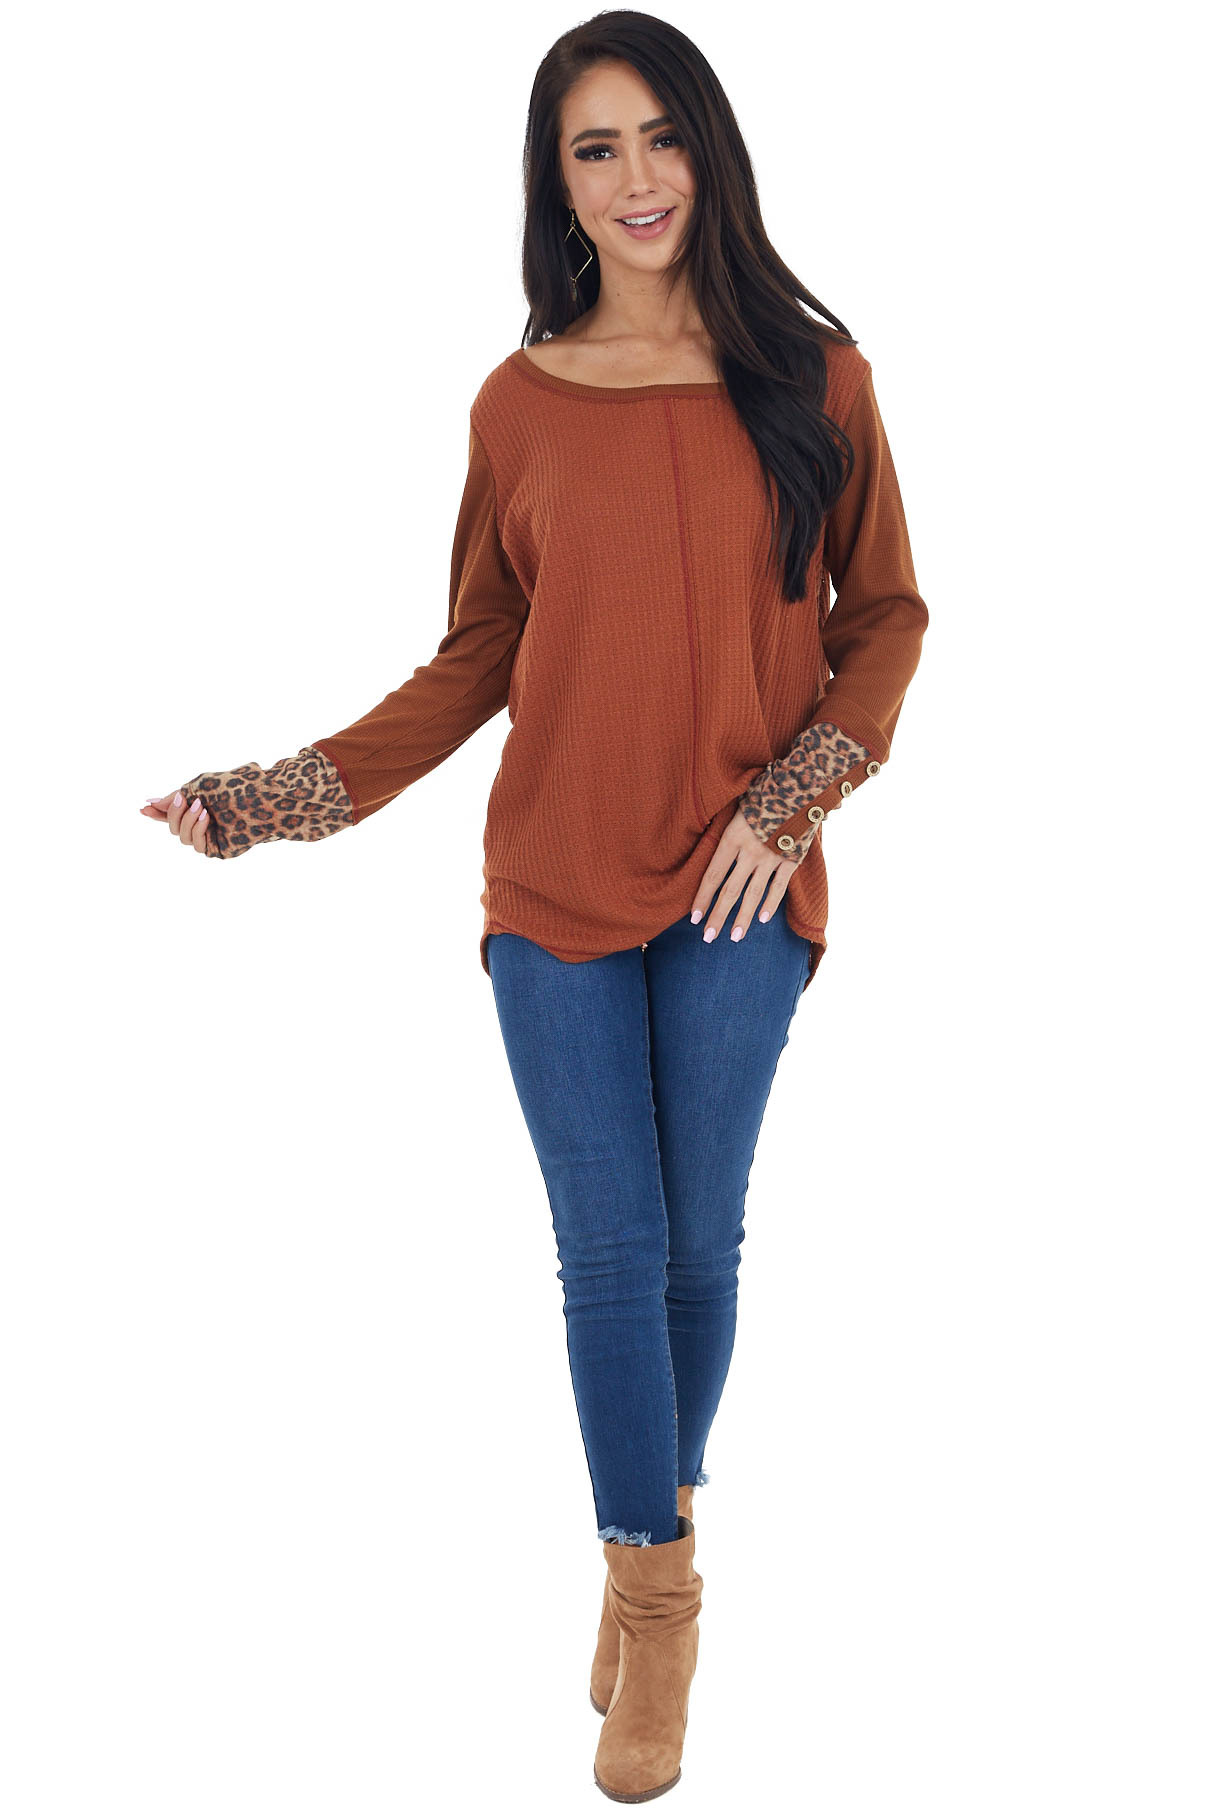 Rust Waffle Knit Top with Long Leopard Contrast Sleeves